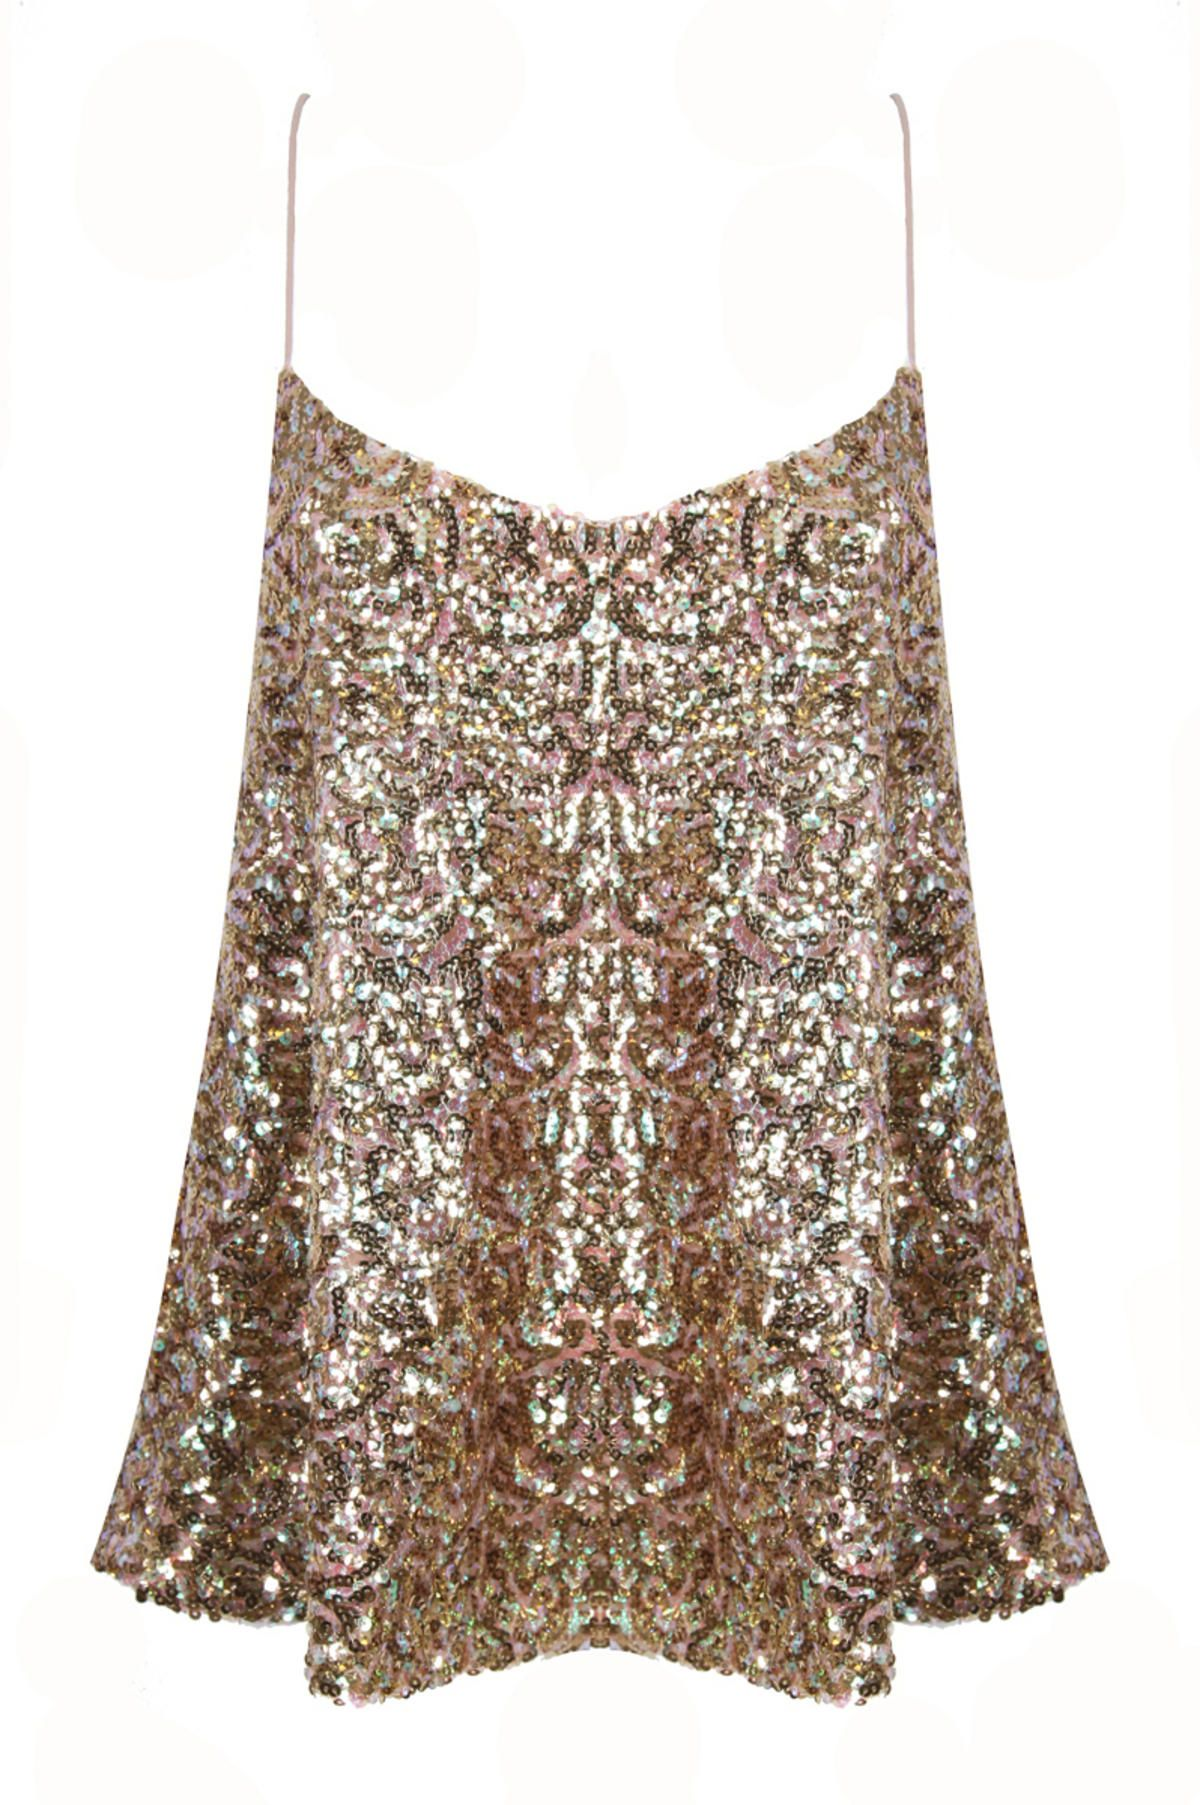 bd201cad7e2e Sequin Cami Top, Gold Sequin Top, Sequin Tank, Gold Sequins, Metallic,